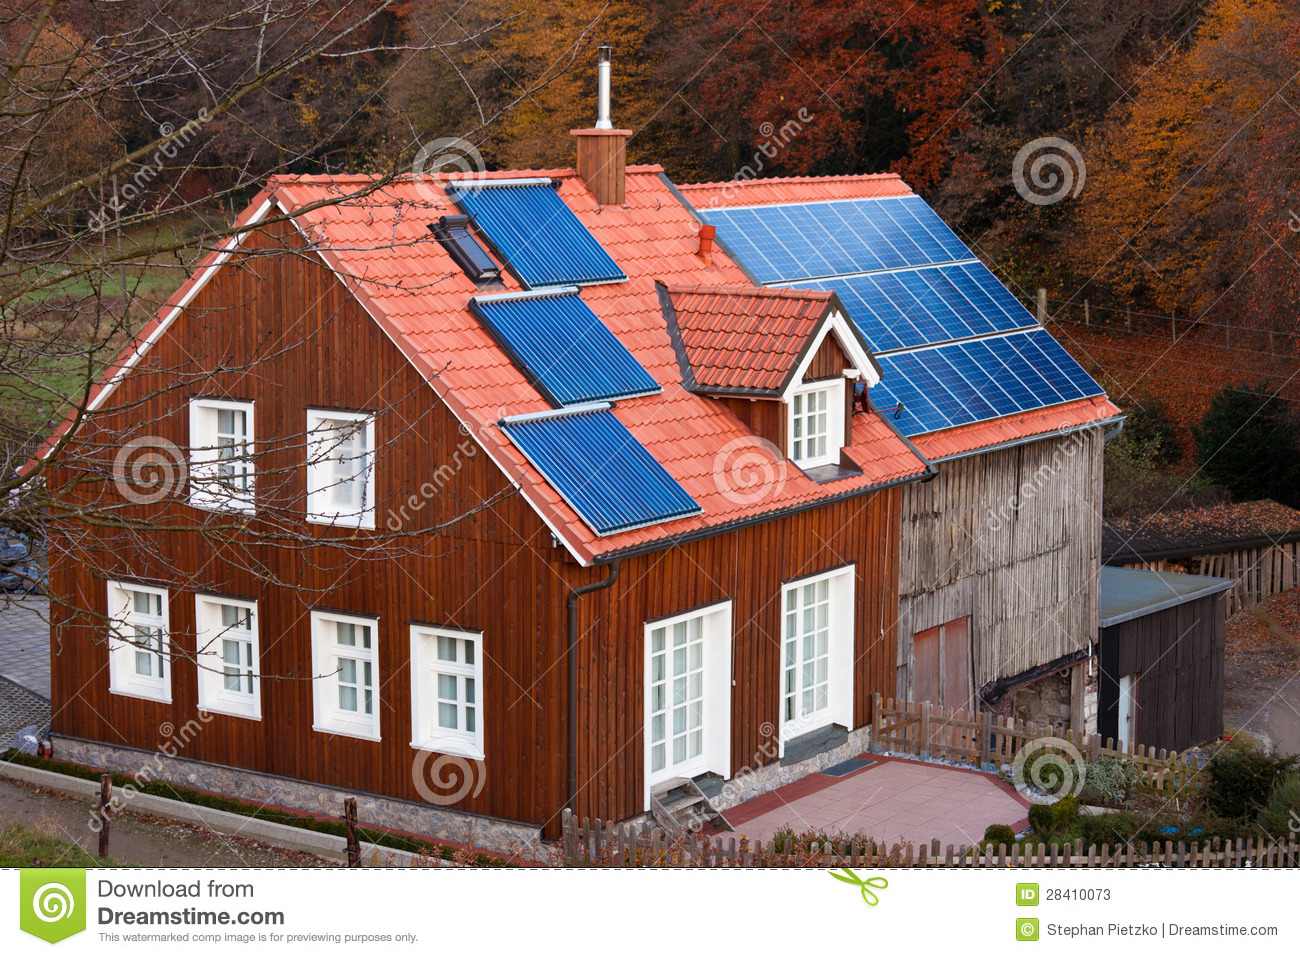 House with solar panels sun heating system on roof stock for Heating systems for houses